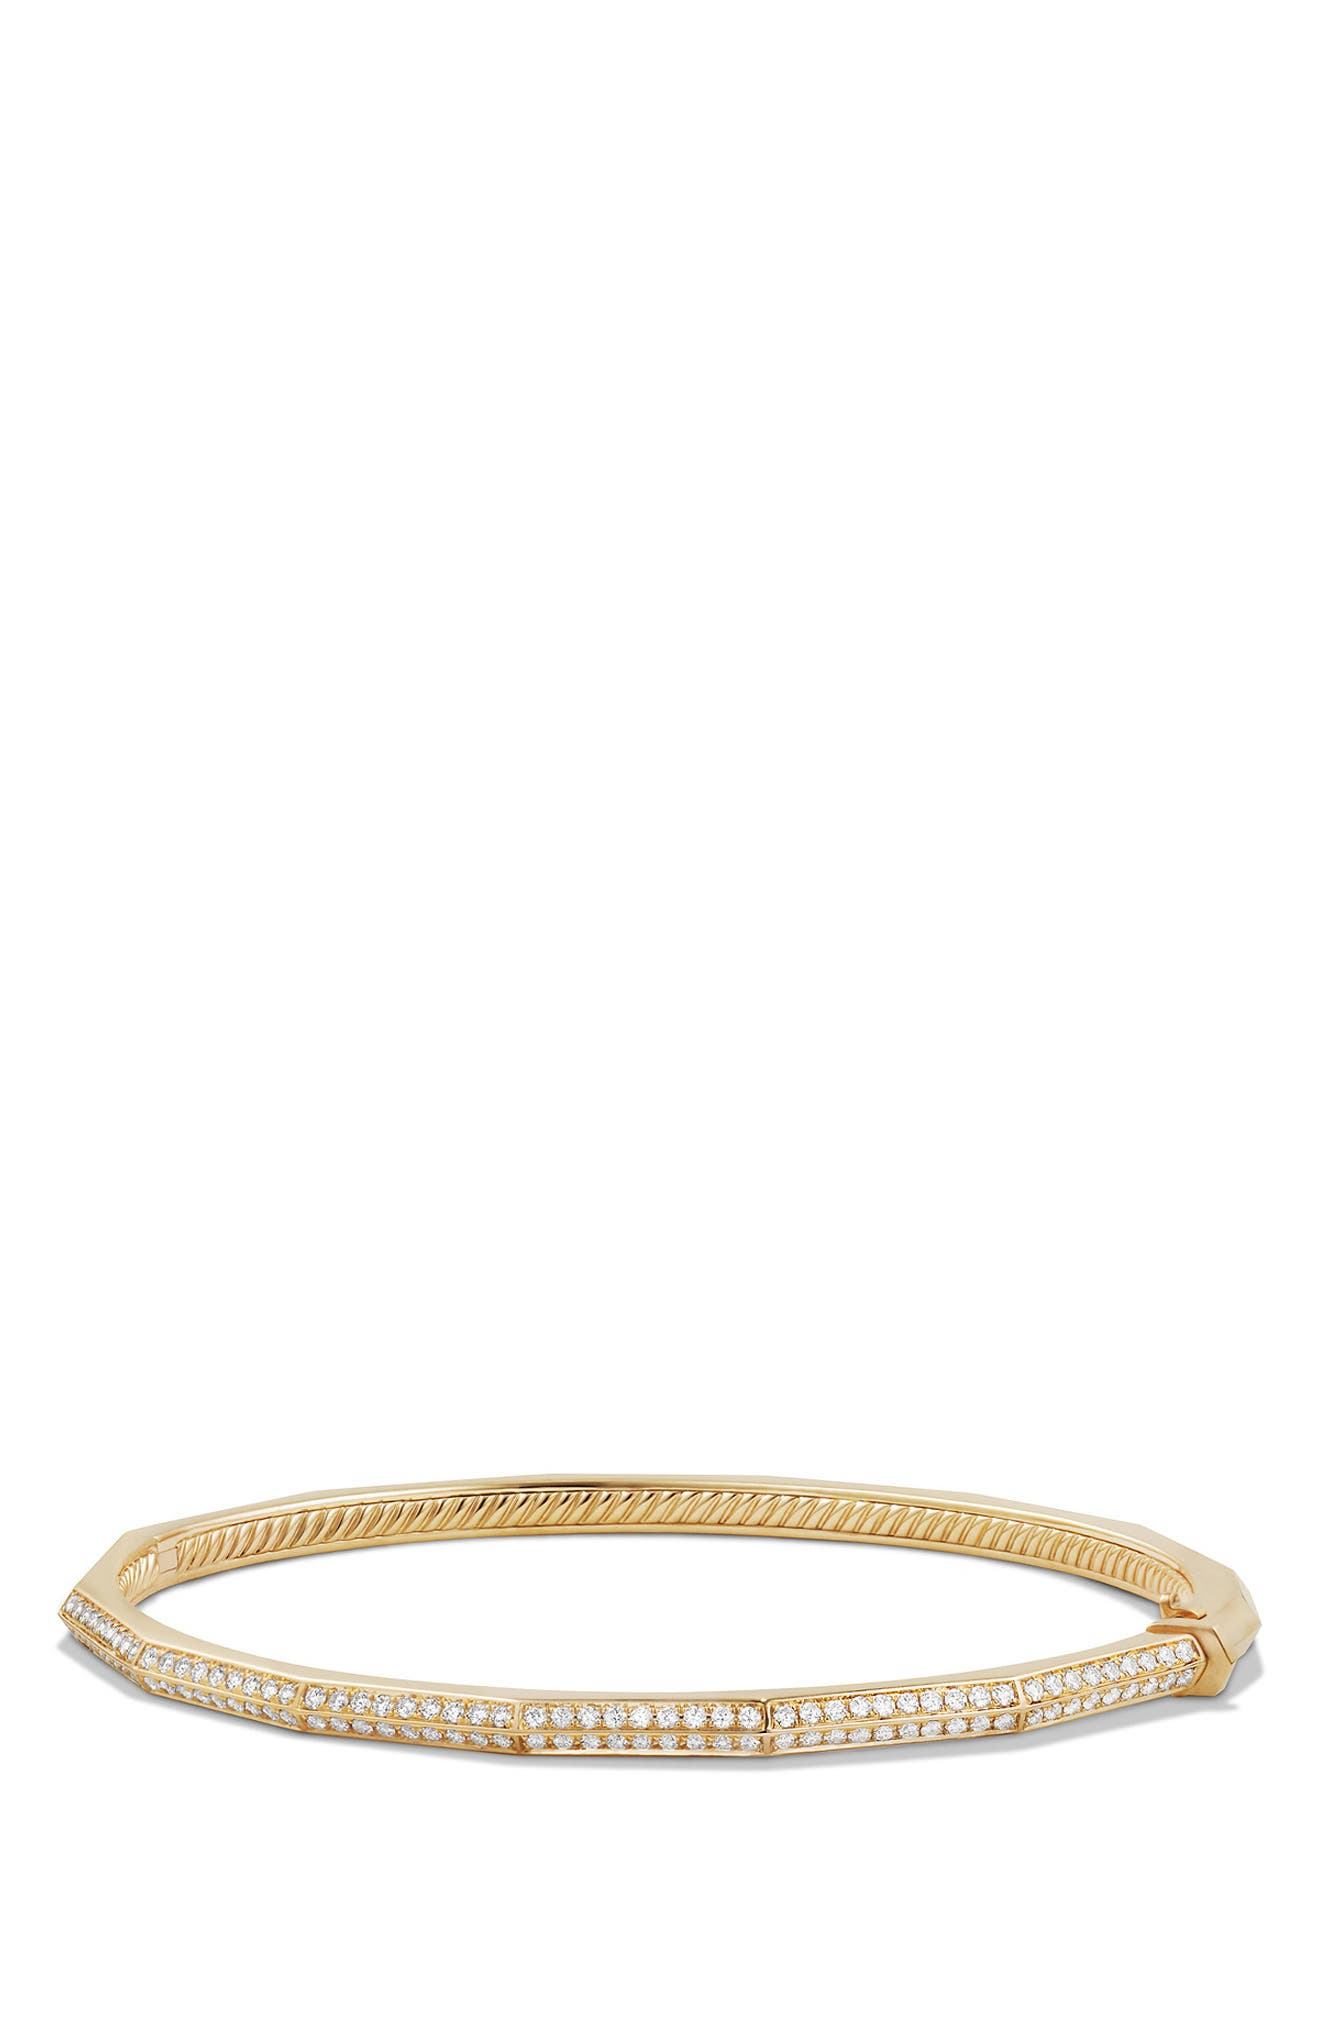 Stax Single-Row Faceted 18K Gold Bracelet with Diamonds, 3mm,                             Main thumbnail 1, color,                             YELLOW GOLD